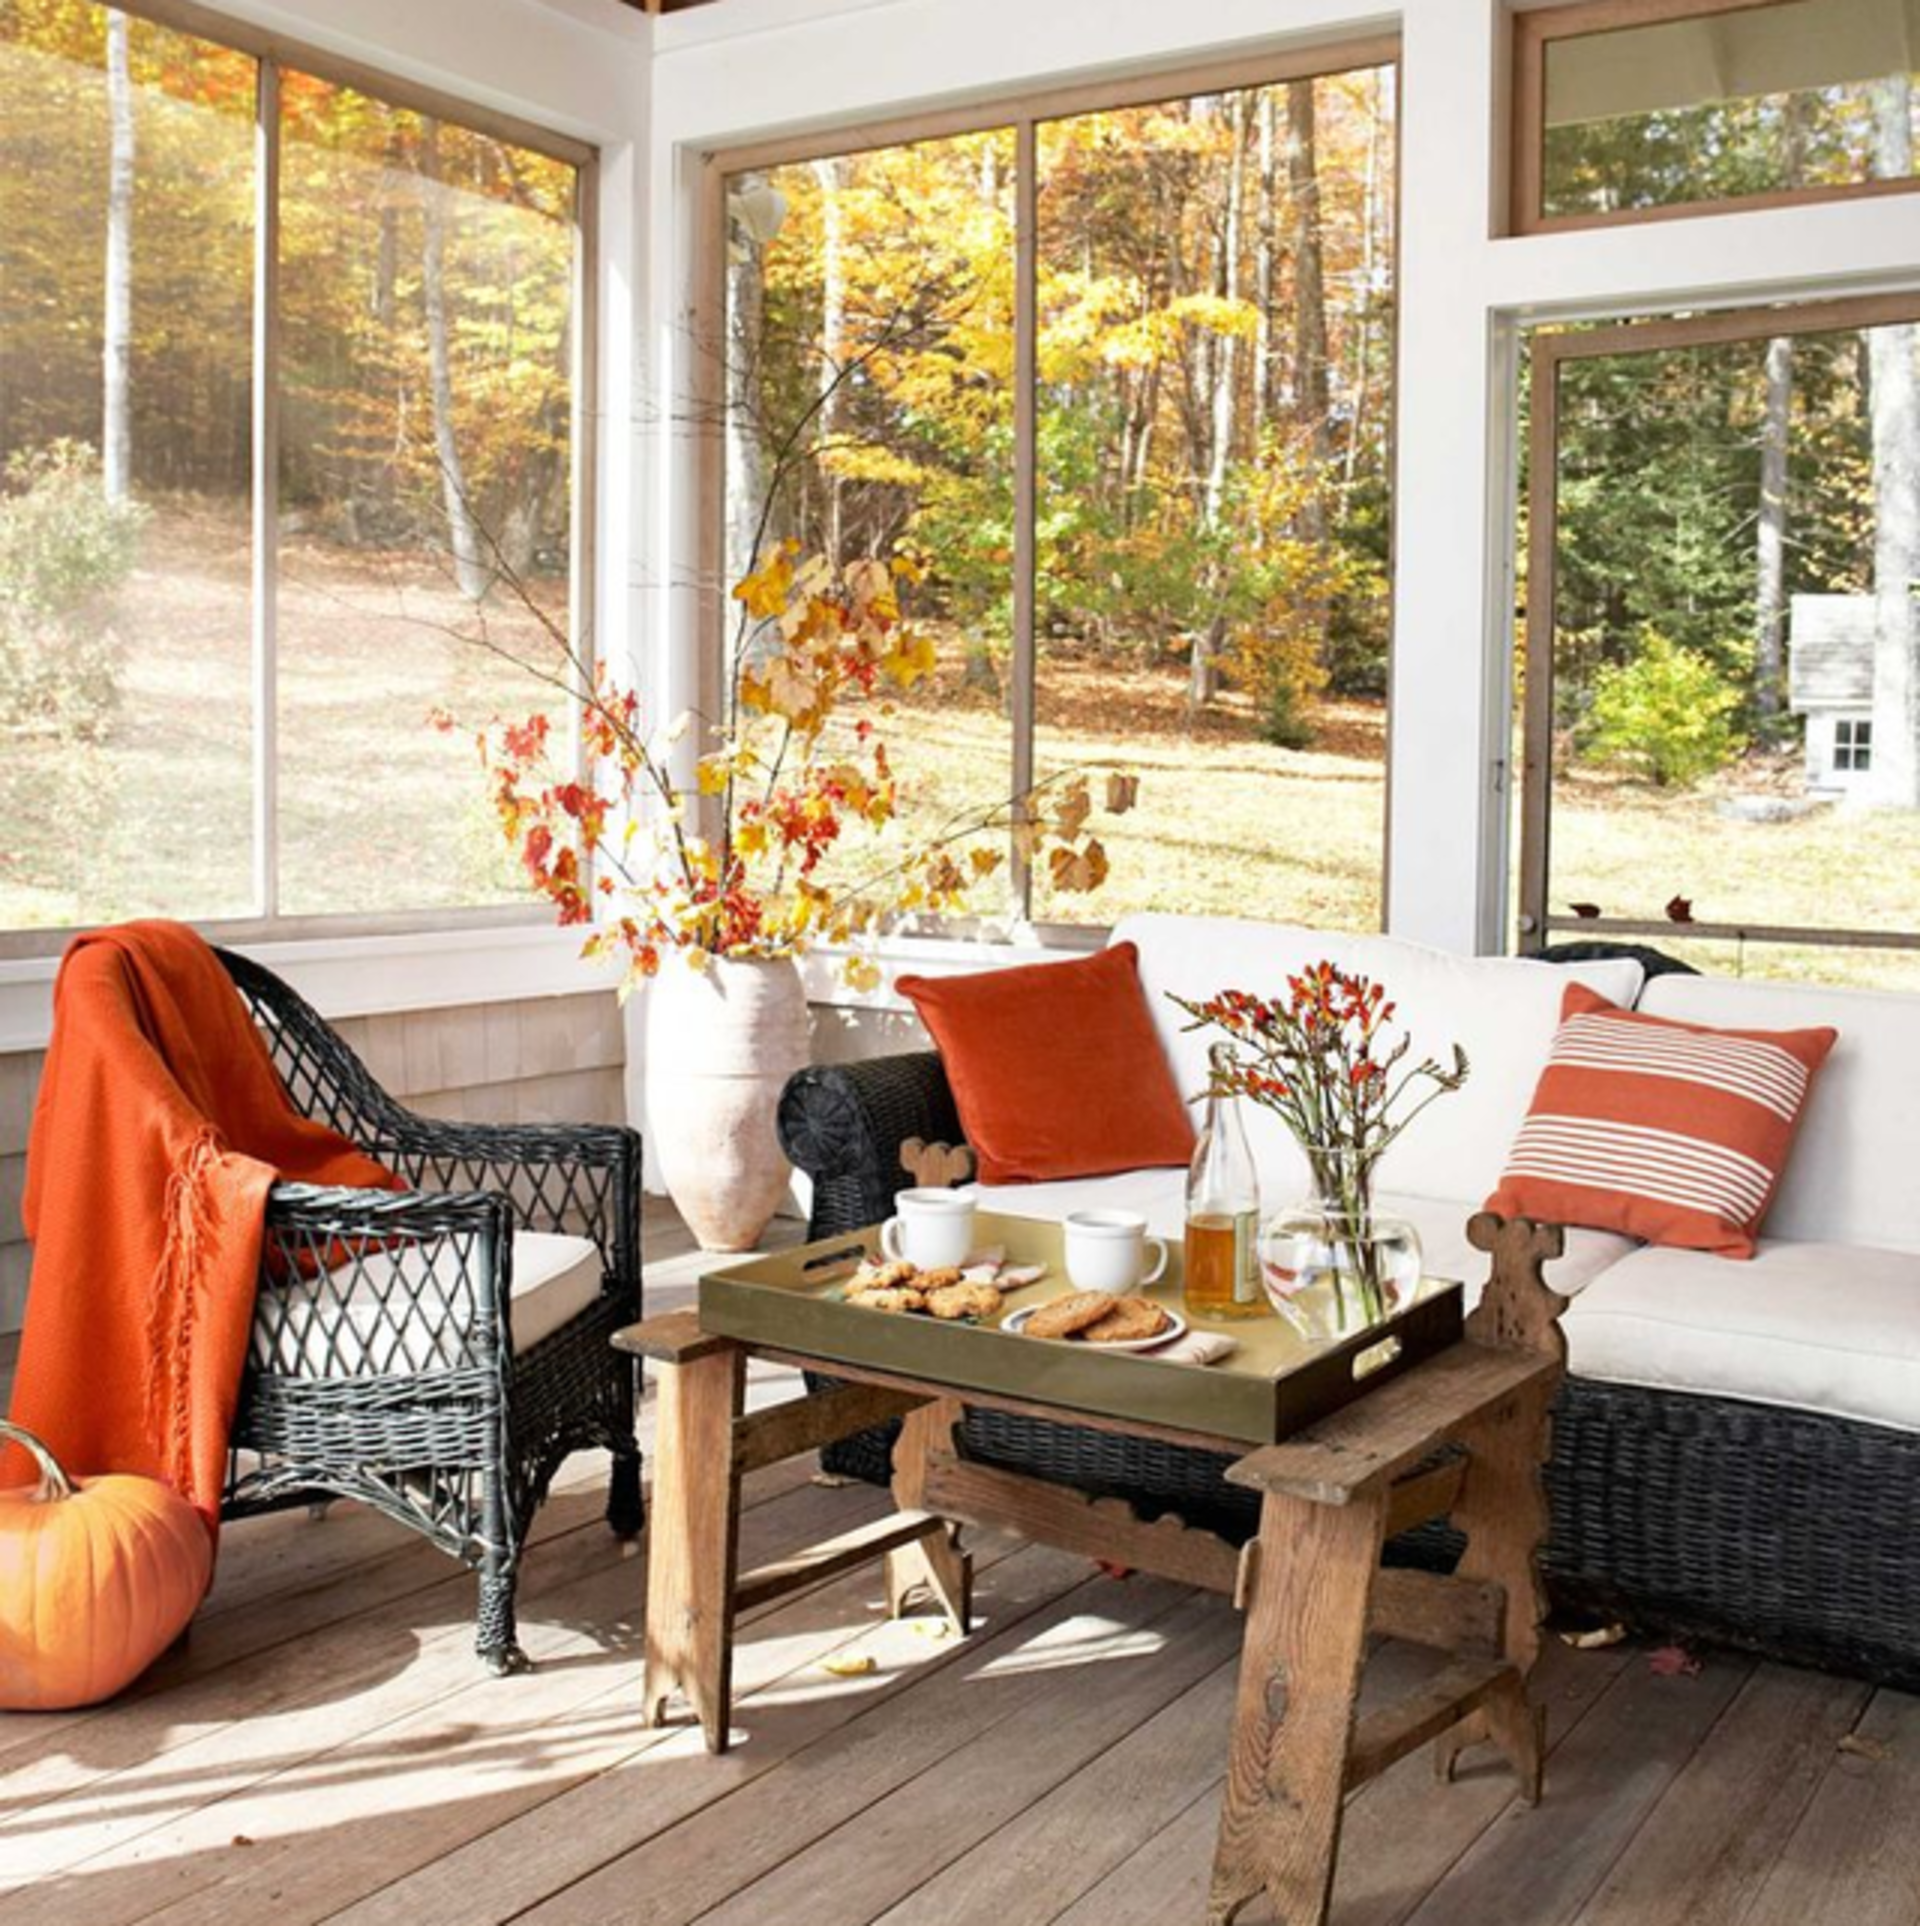 You'll fall in love with these 5 home design trends for autumn